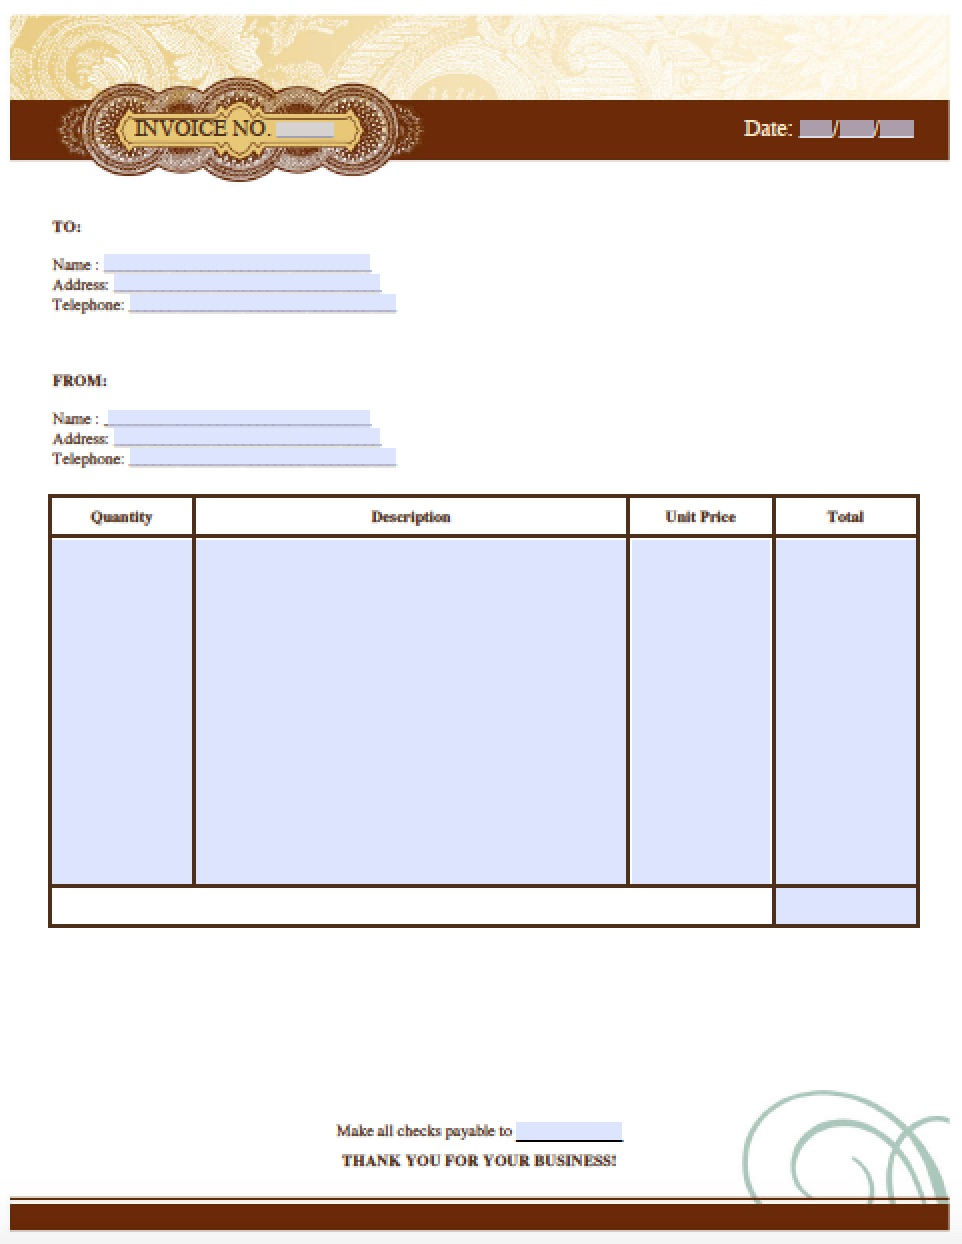 carpet cleaning service invoice template excel pdf word artist invoice template business